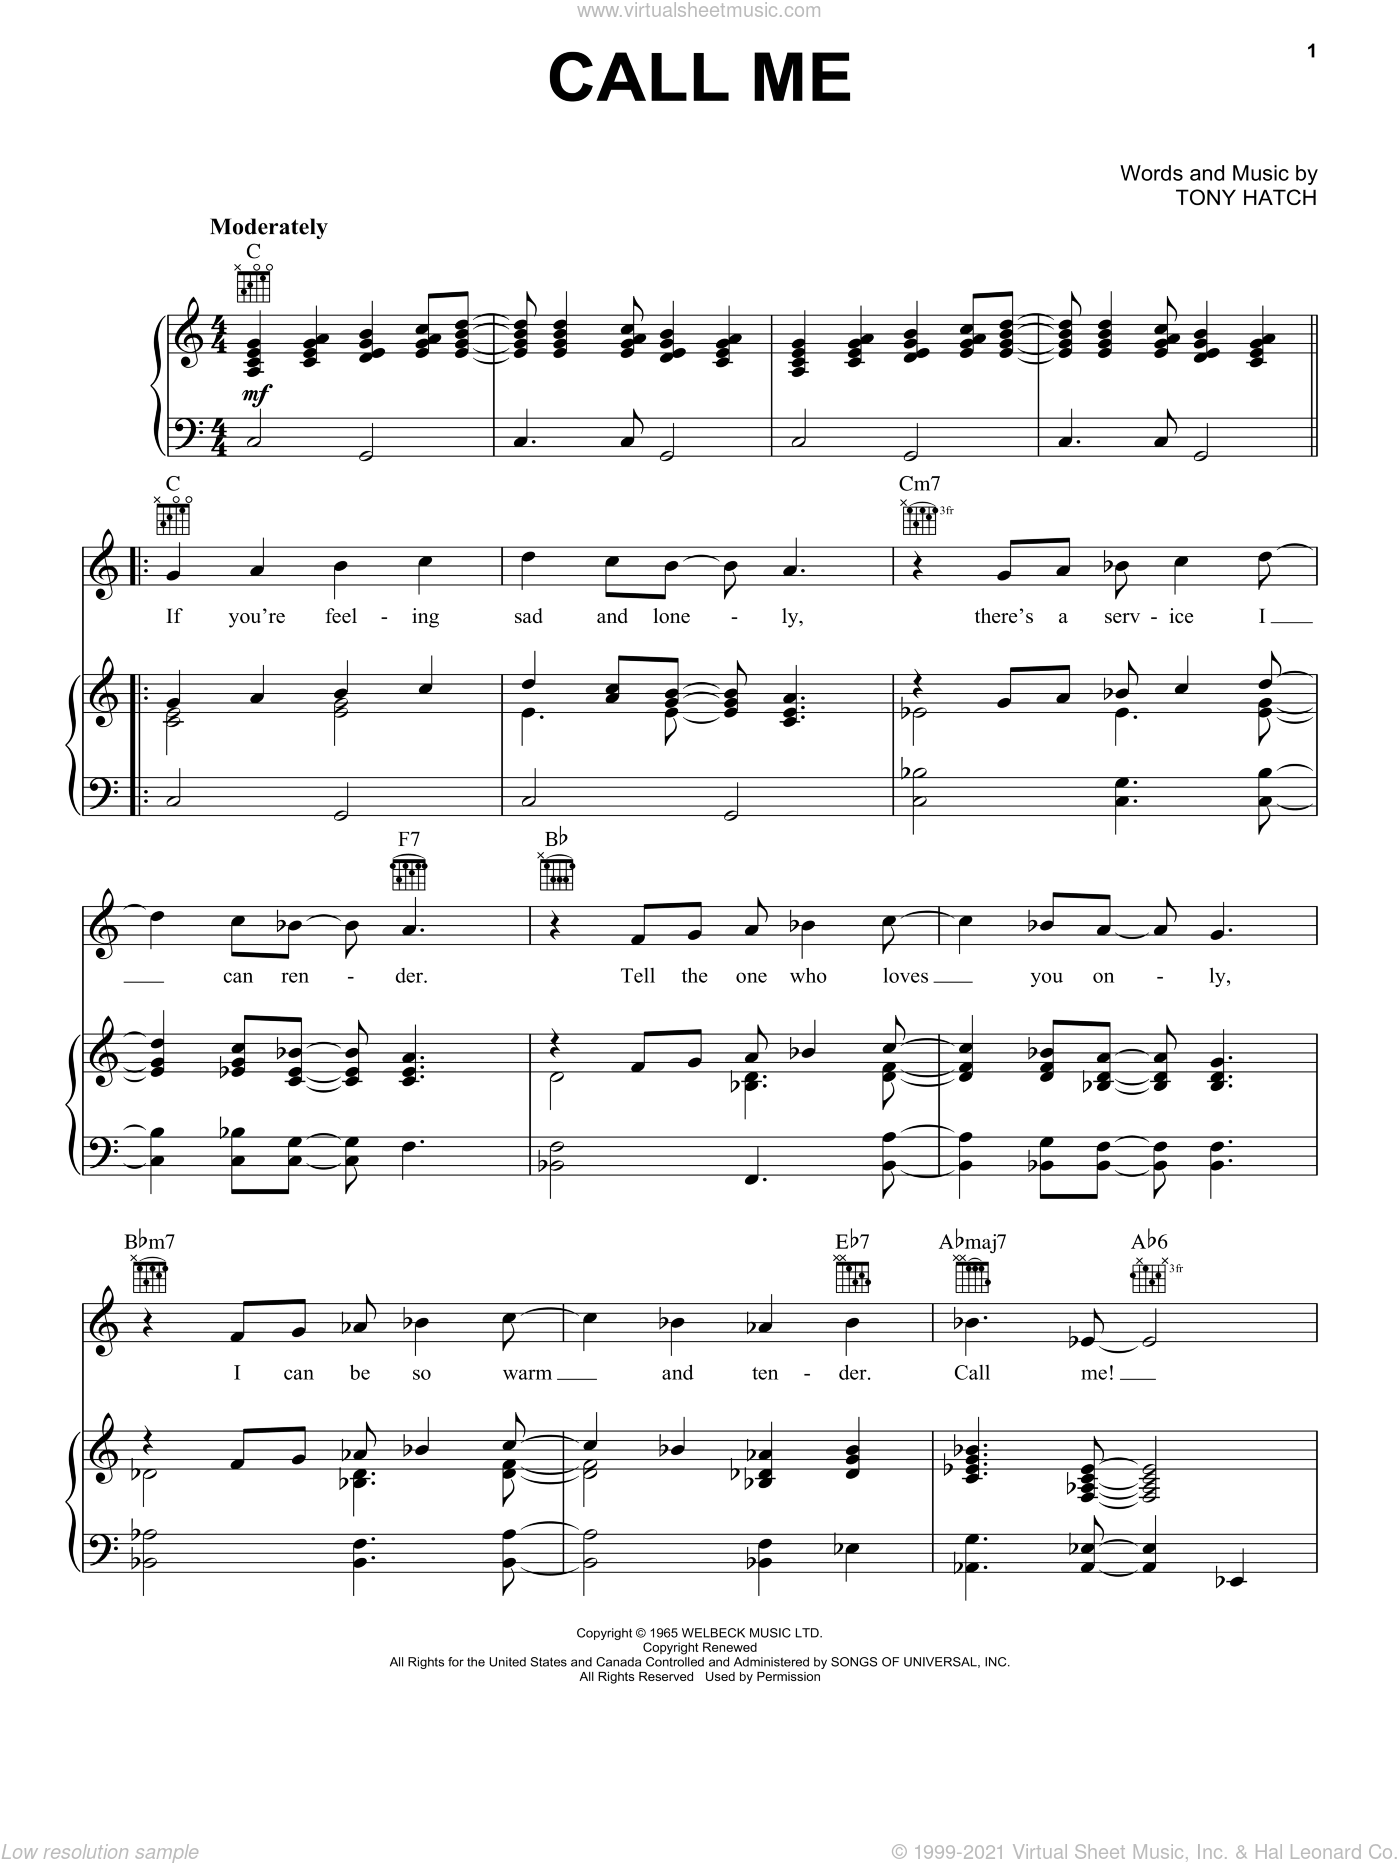 Call Me sheet music for voice, piano or guitar by Petula Clark, Astrud Gilberto, Chris Montez, Nancy Wilson and Tony Hatch, intermediate skill level